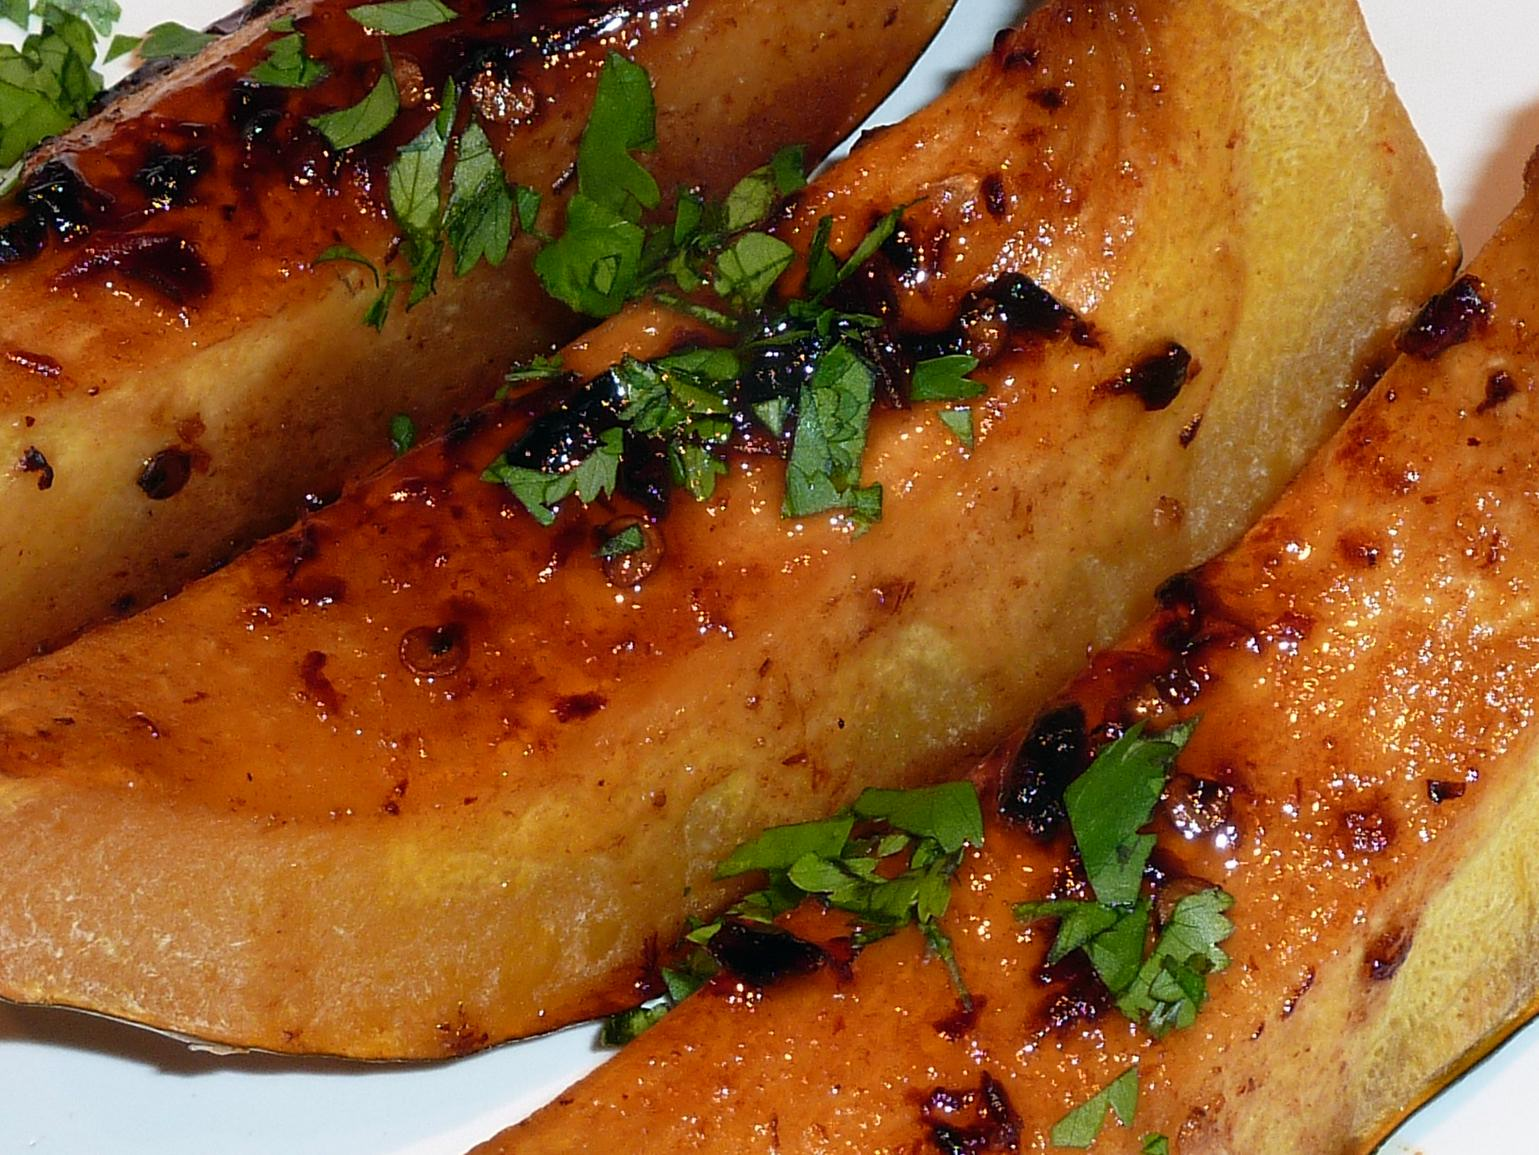 Roasted Acorn Squash with Chipotle-Hoisin Glaze